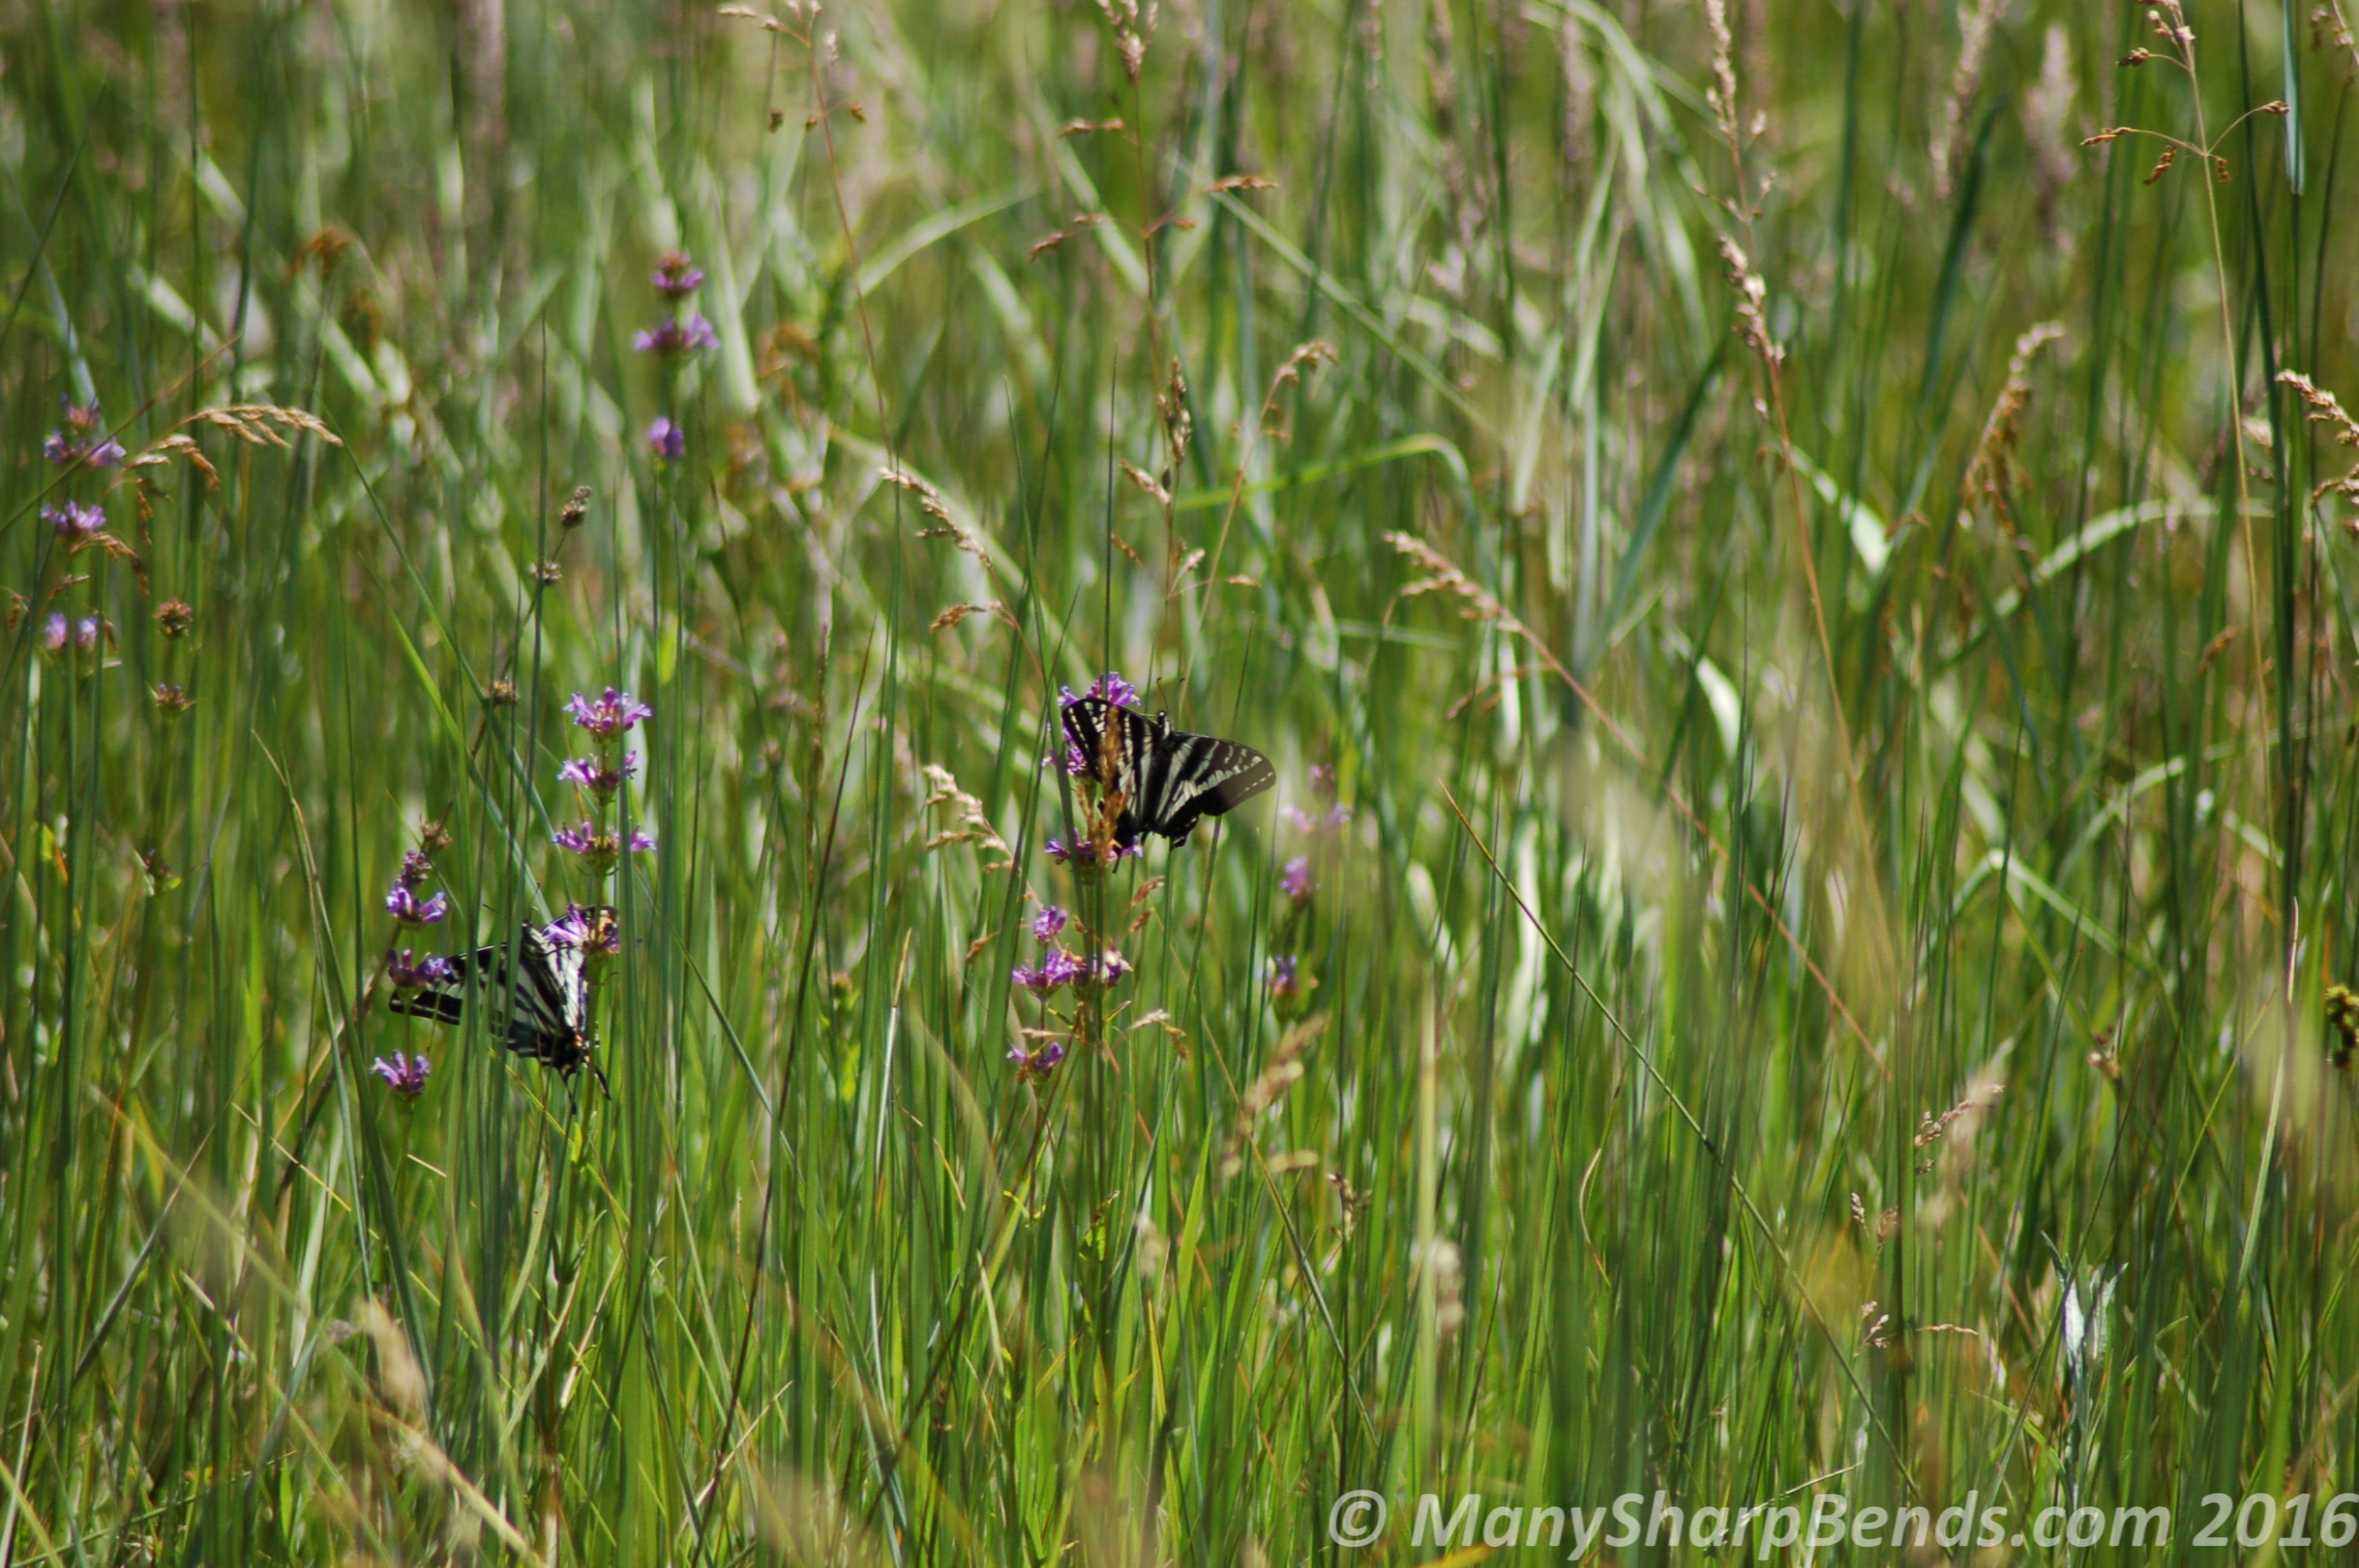 Winged Beauties - a couple of Swallow Tailed Butterflies in the meadows near El Capitan